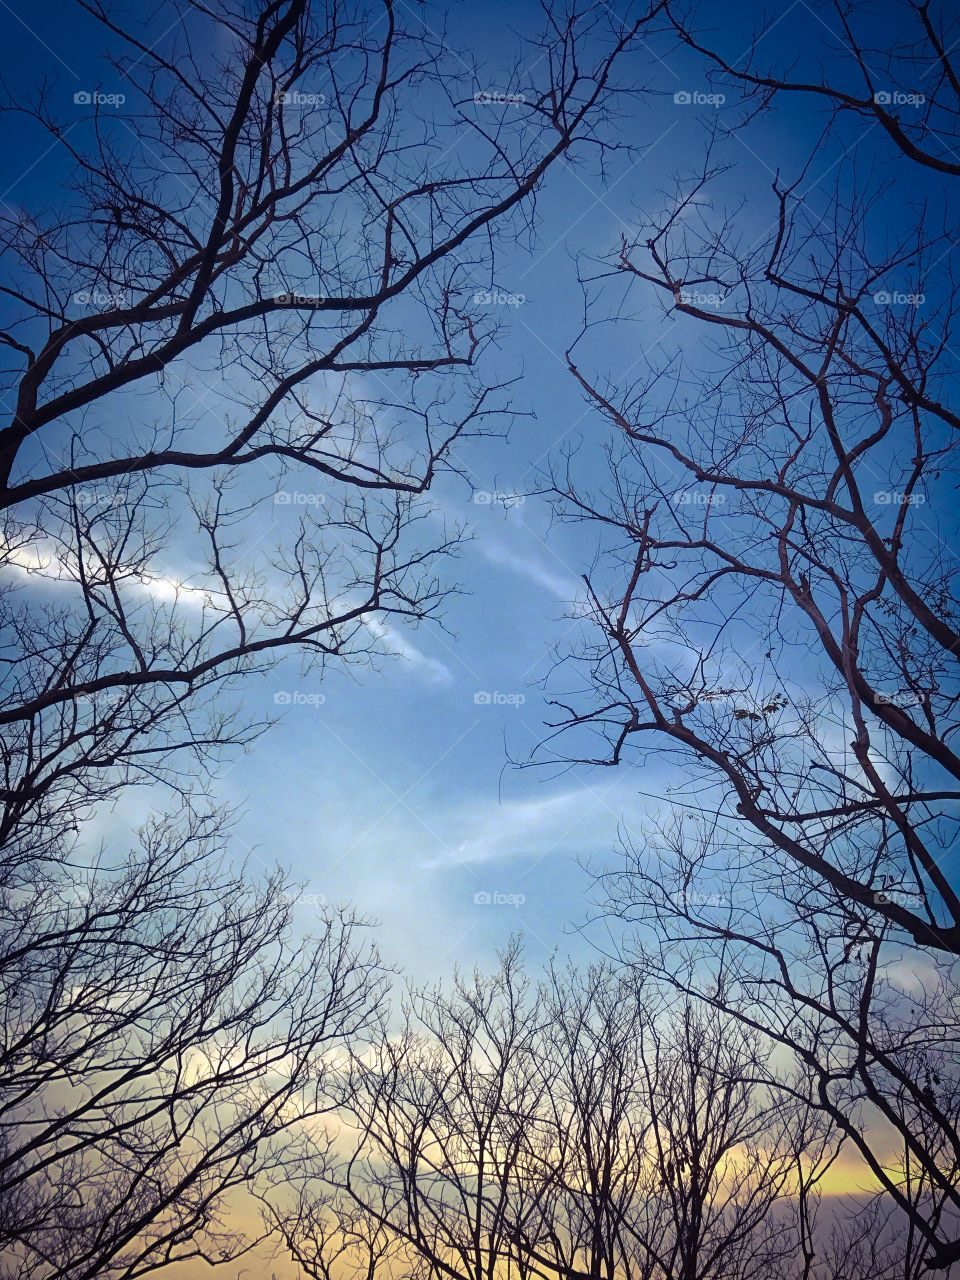 Leafless branches of trees in fall season with sky and cloud background